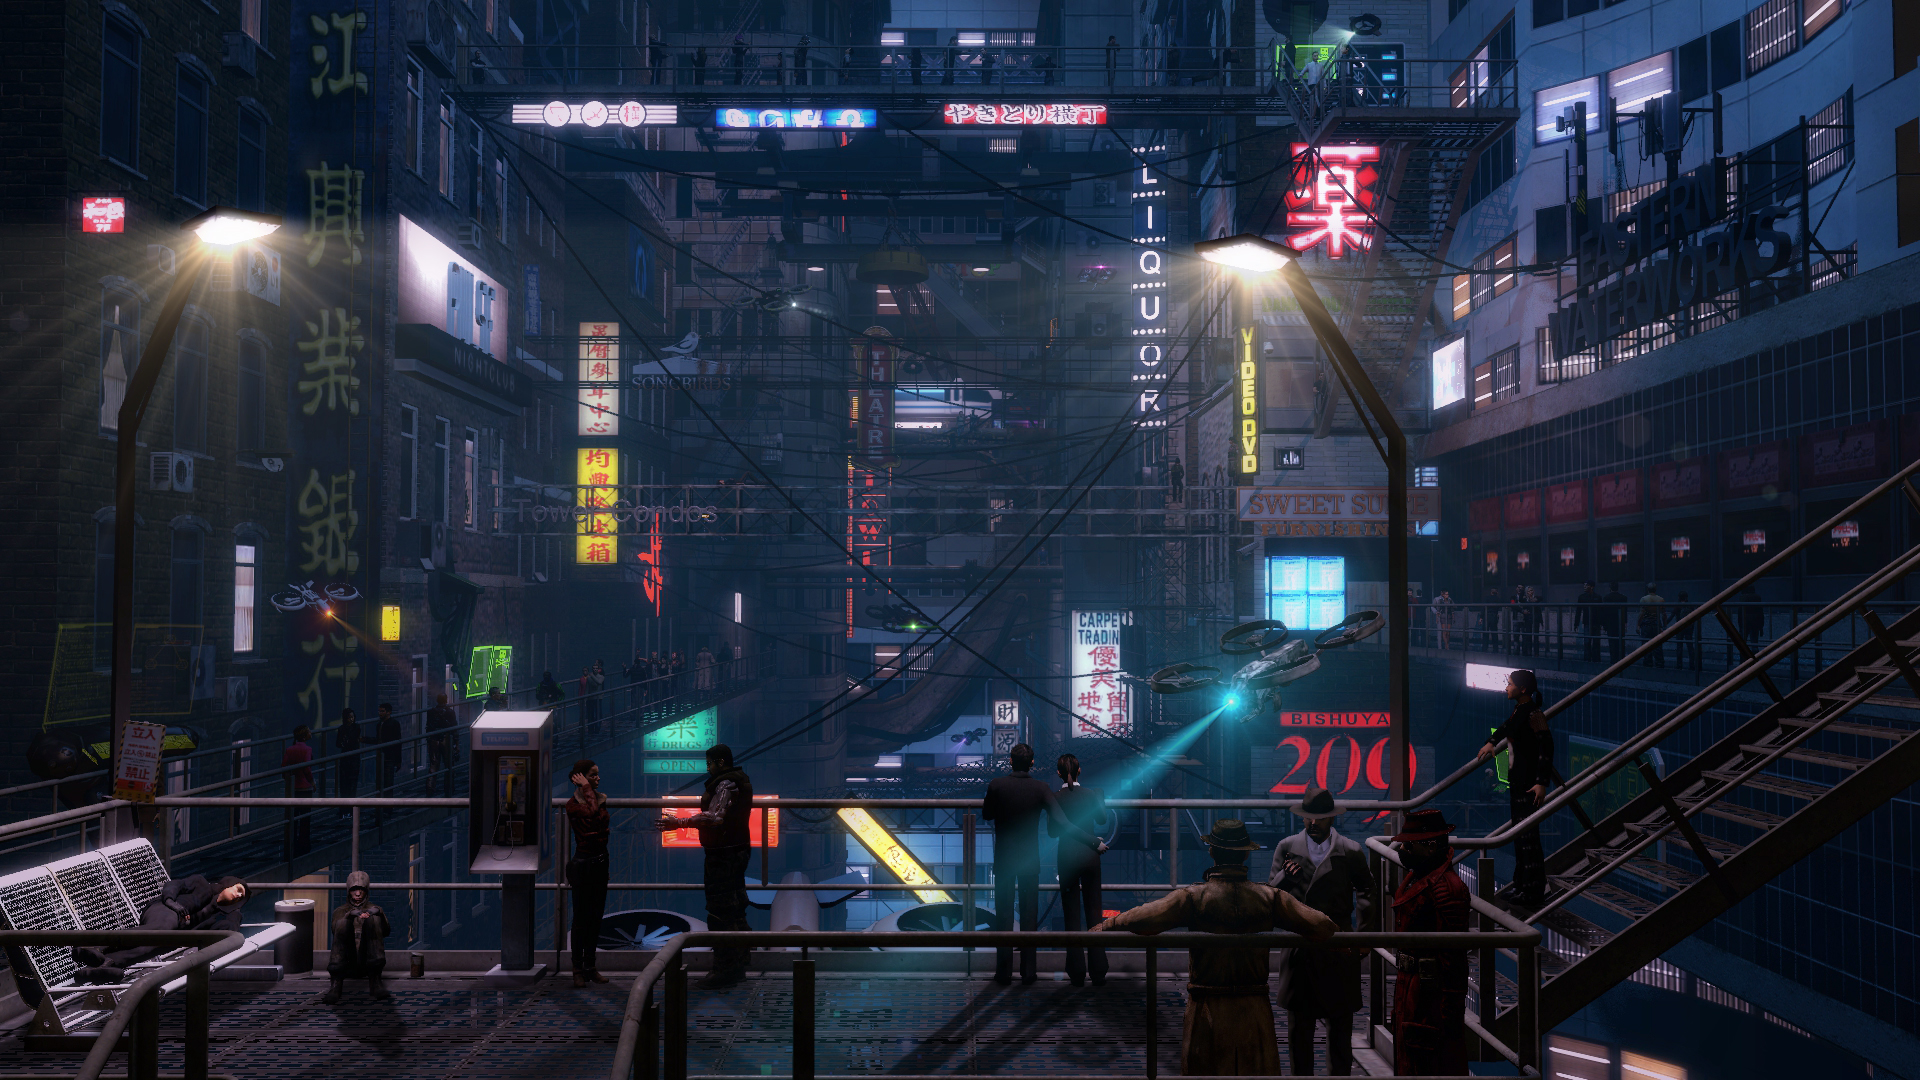 3d Wallpaper For Bedroom Cyberpunk Street By Konstantin3001 On Deviantart